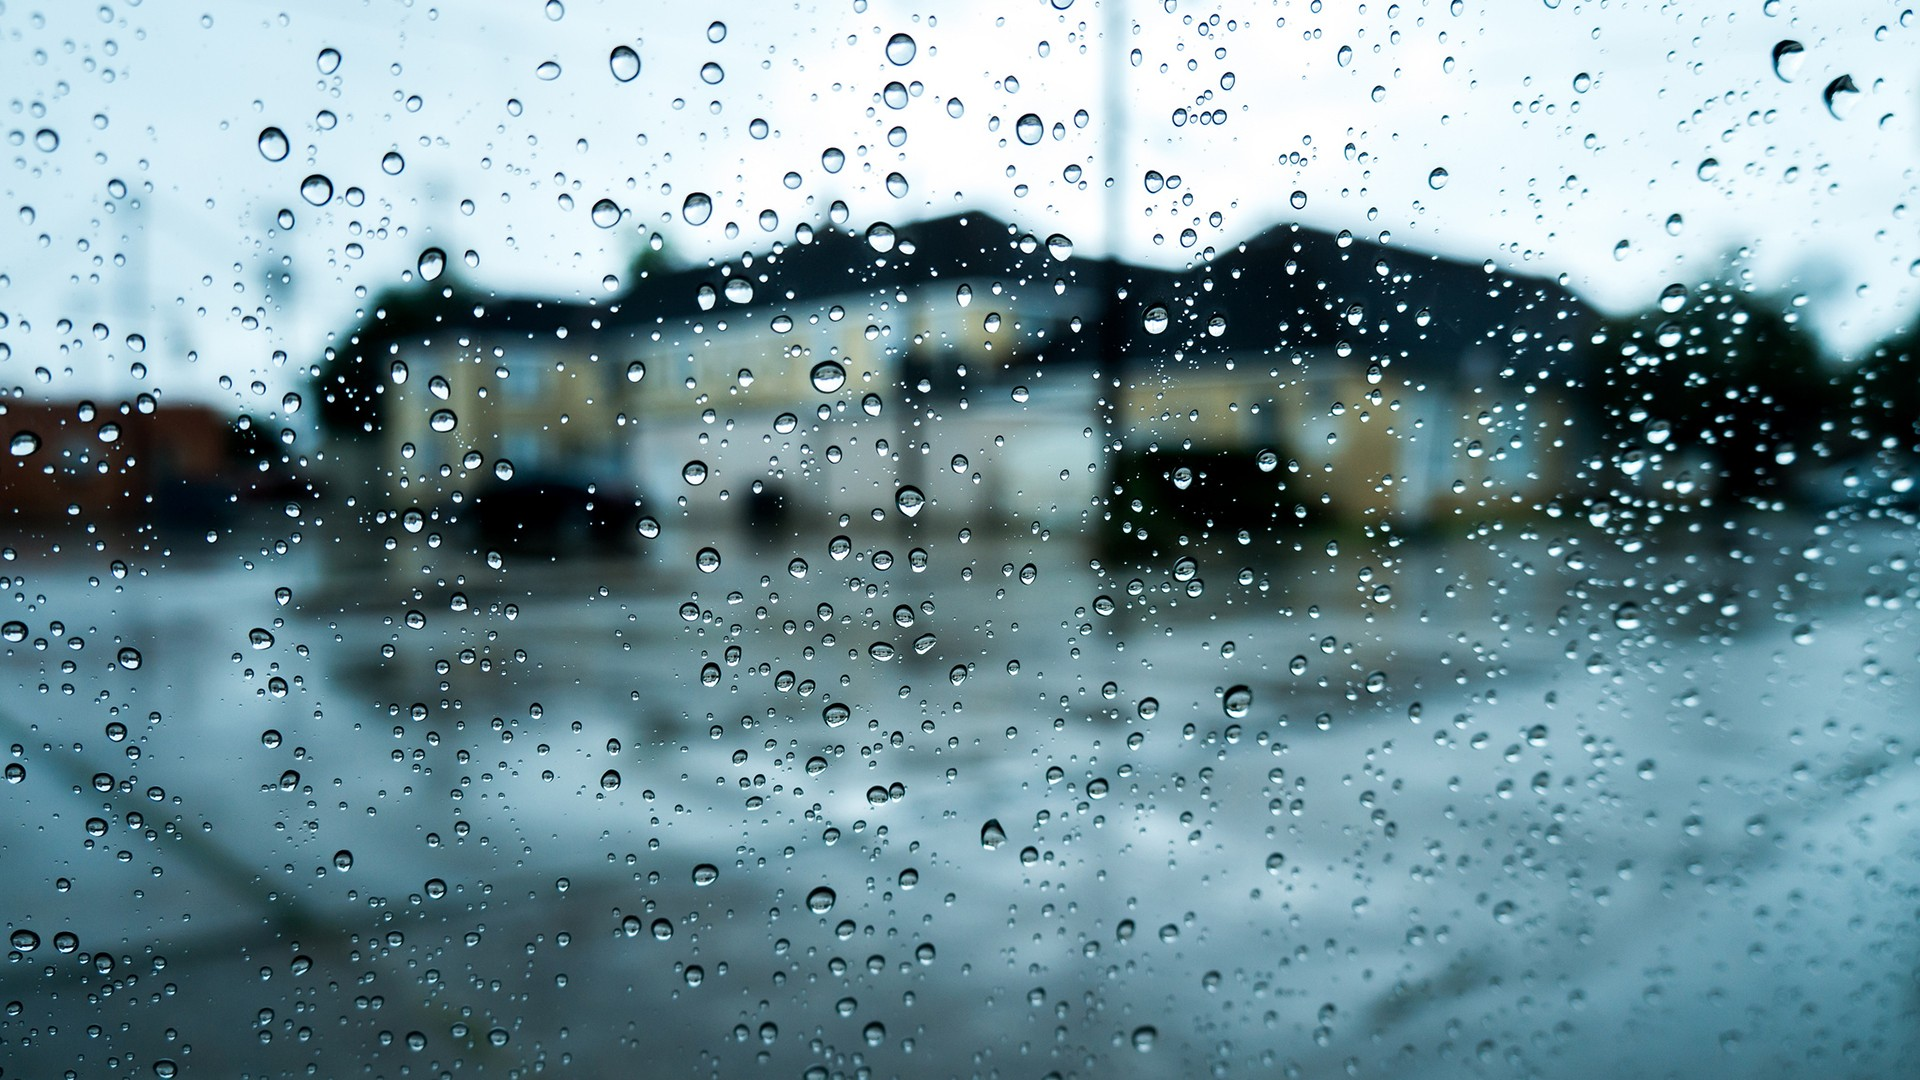 Rain wallpaper hd download free awesome full hd wallpapers for desktop and mobile devices in - Rain drop wallpaper hd ...